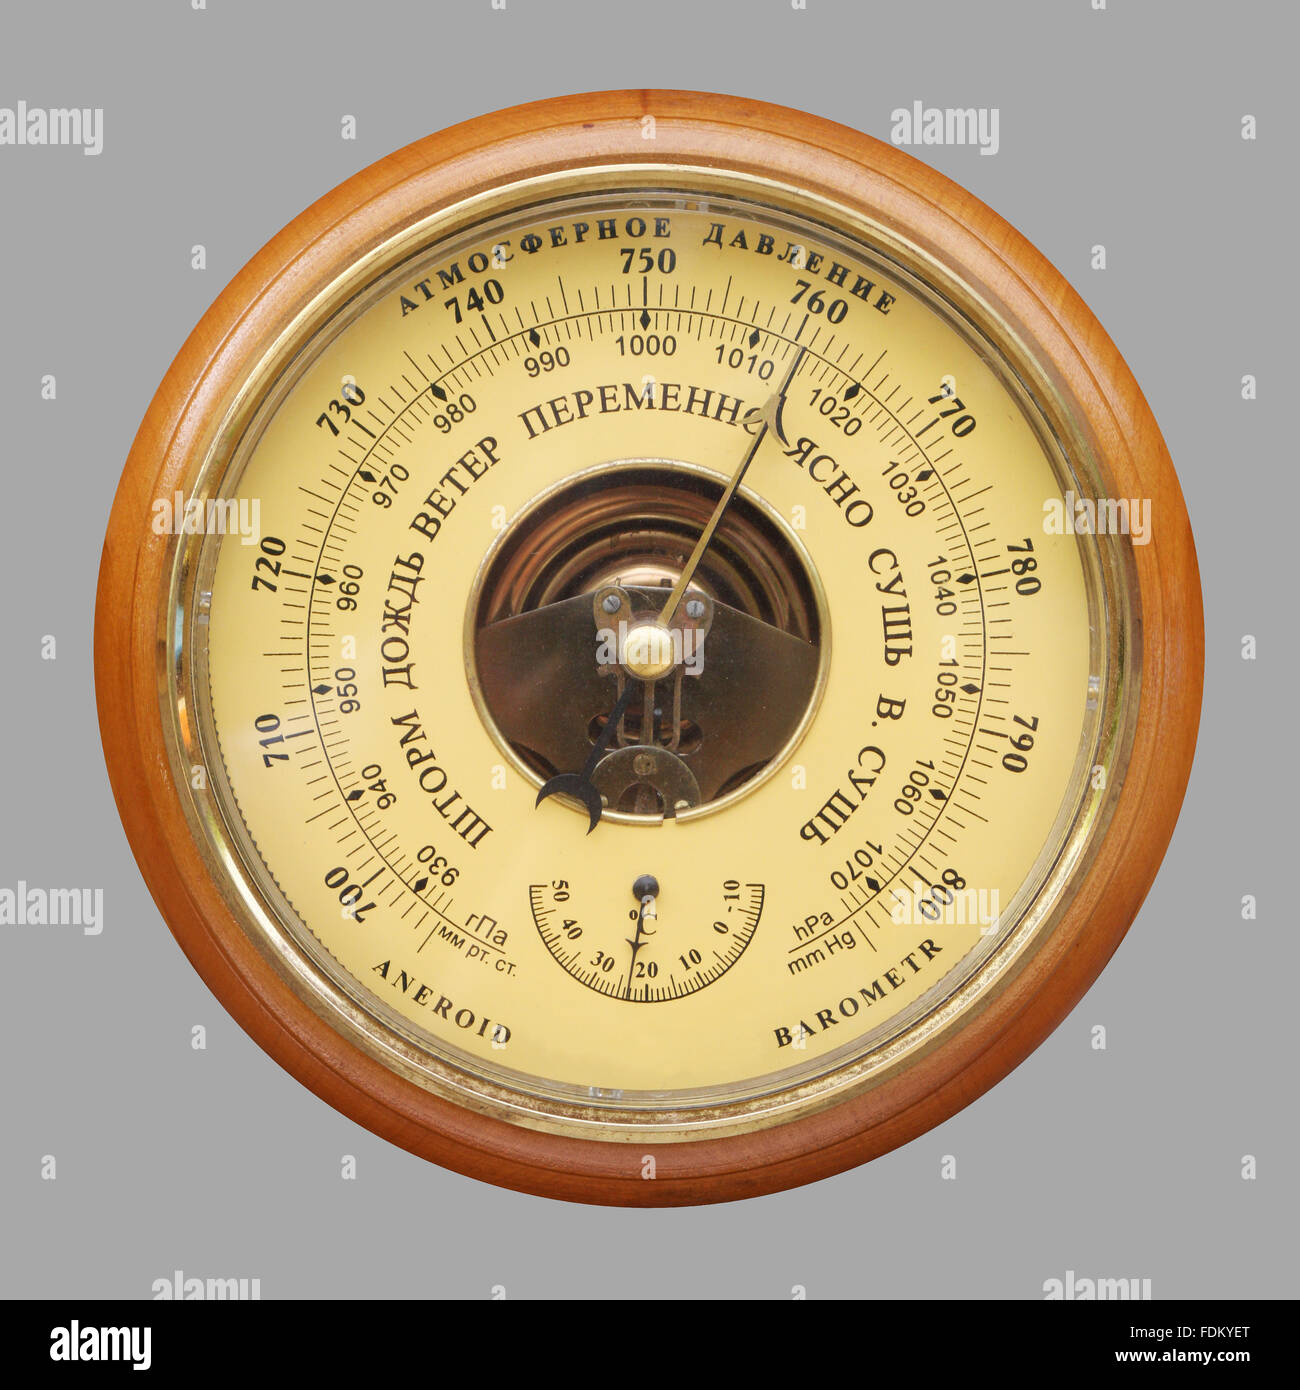 Pressure Temperature Gauge Stock Photos Barometer Signal Conditioner Old Russian Image